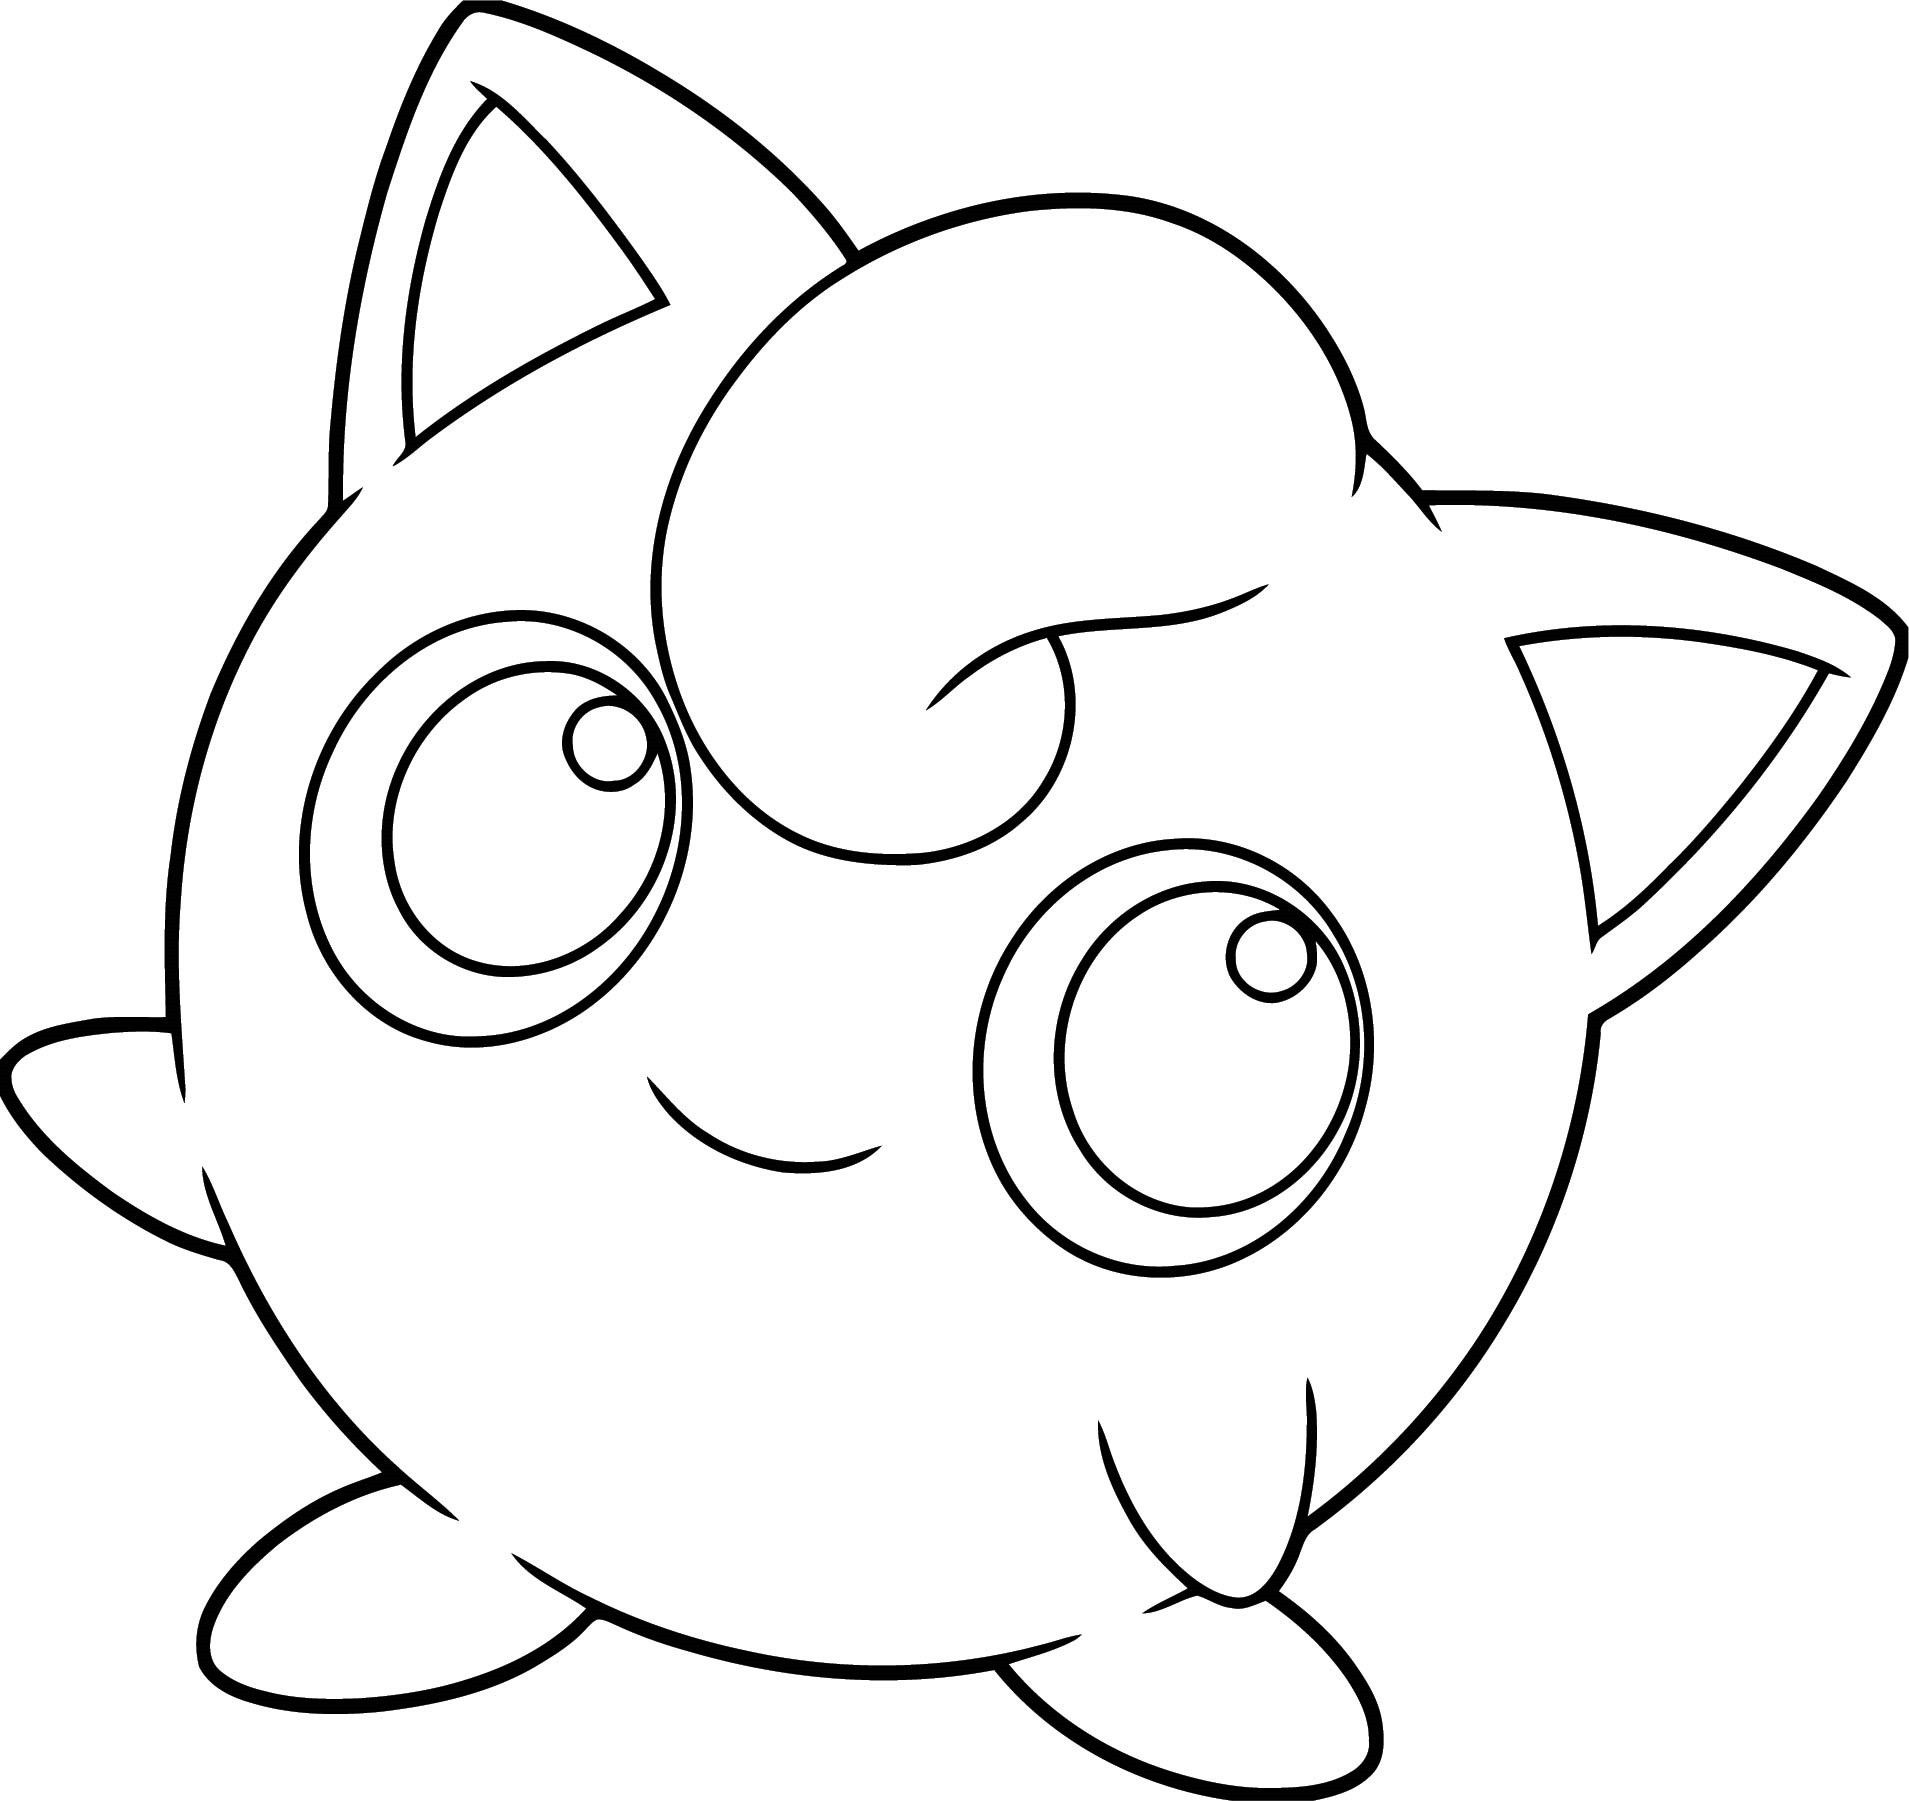 Pokemon Go Jigglypuff Coloring Sheets For Kids Coloring Pages Pokemon Coloring Pages Pokemon Jigglypuff